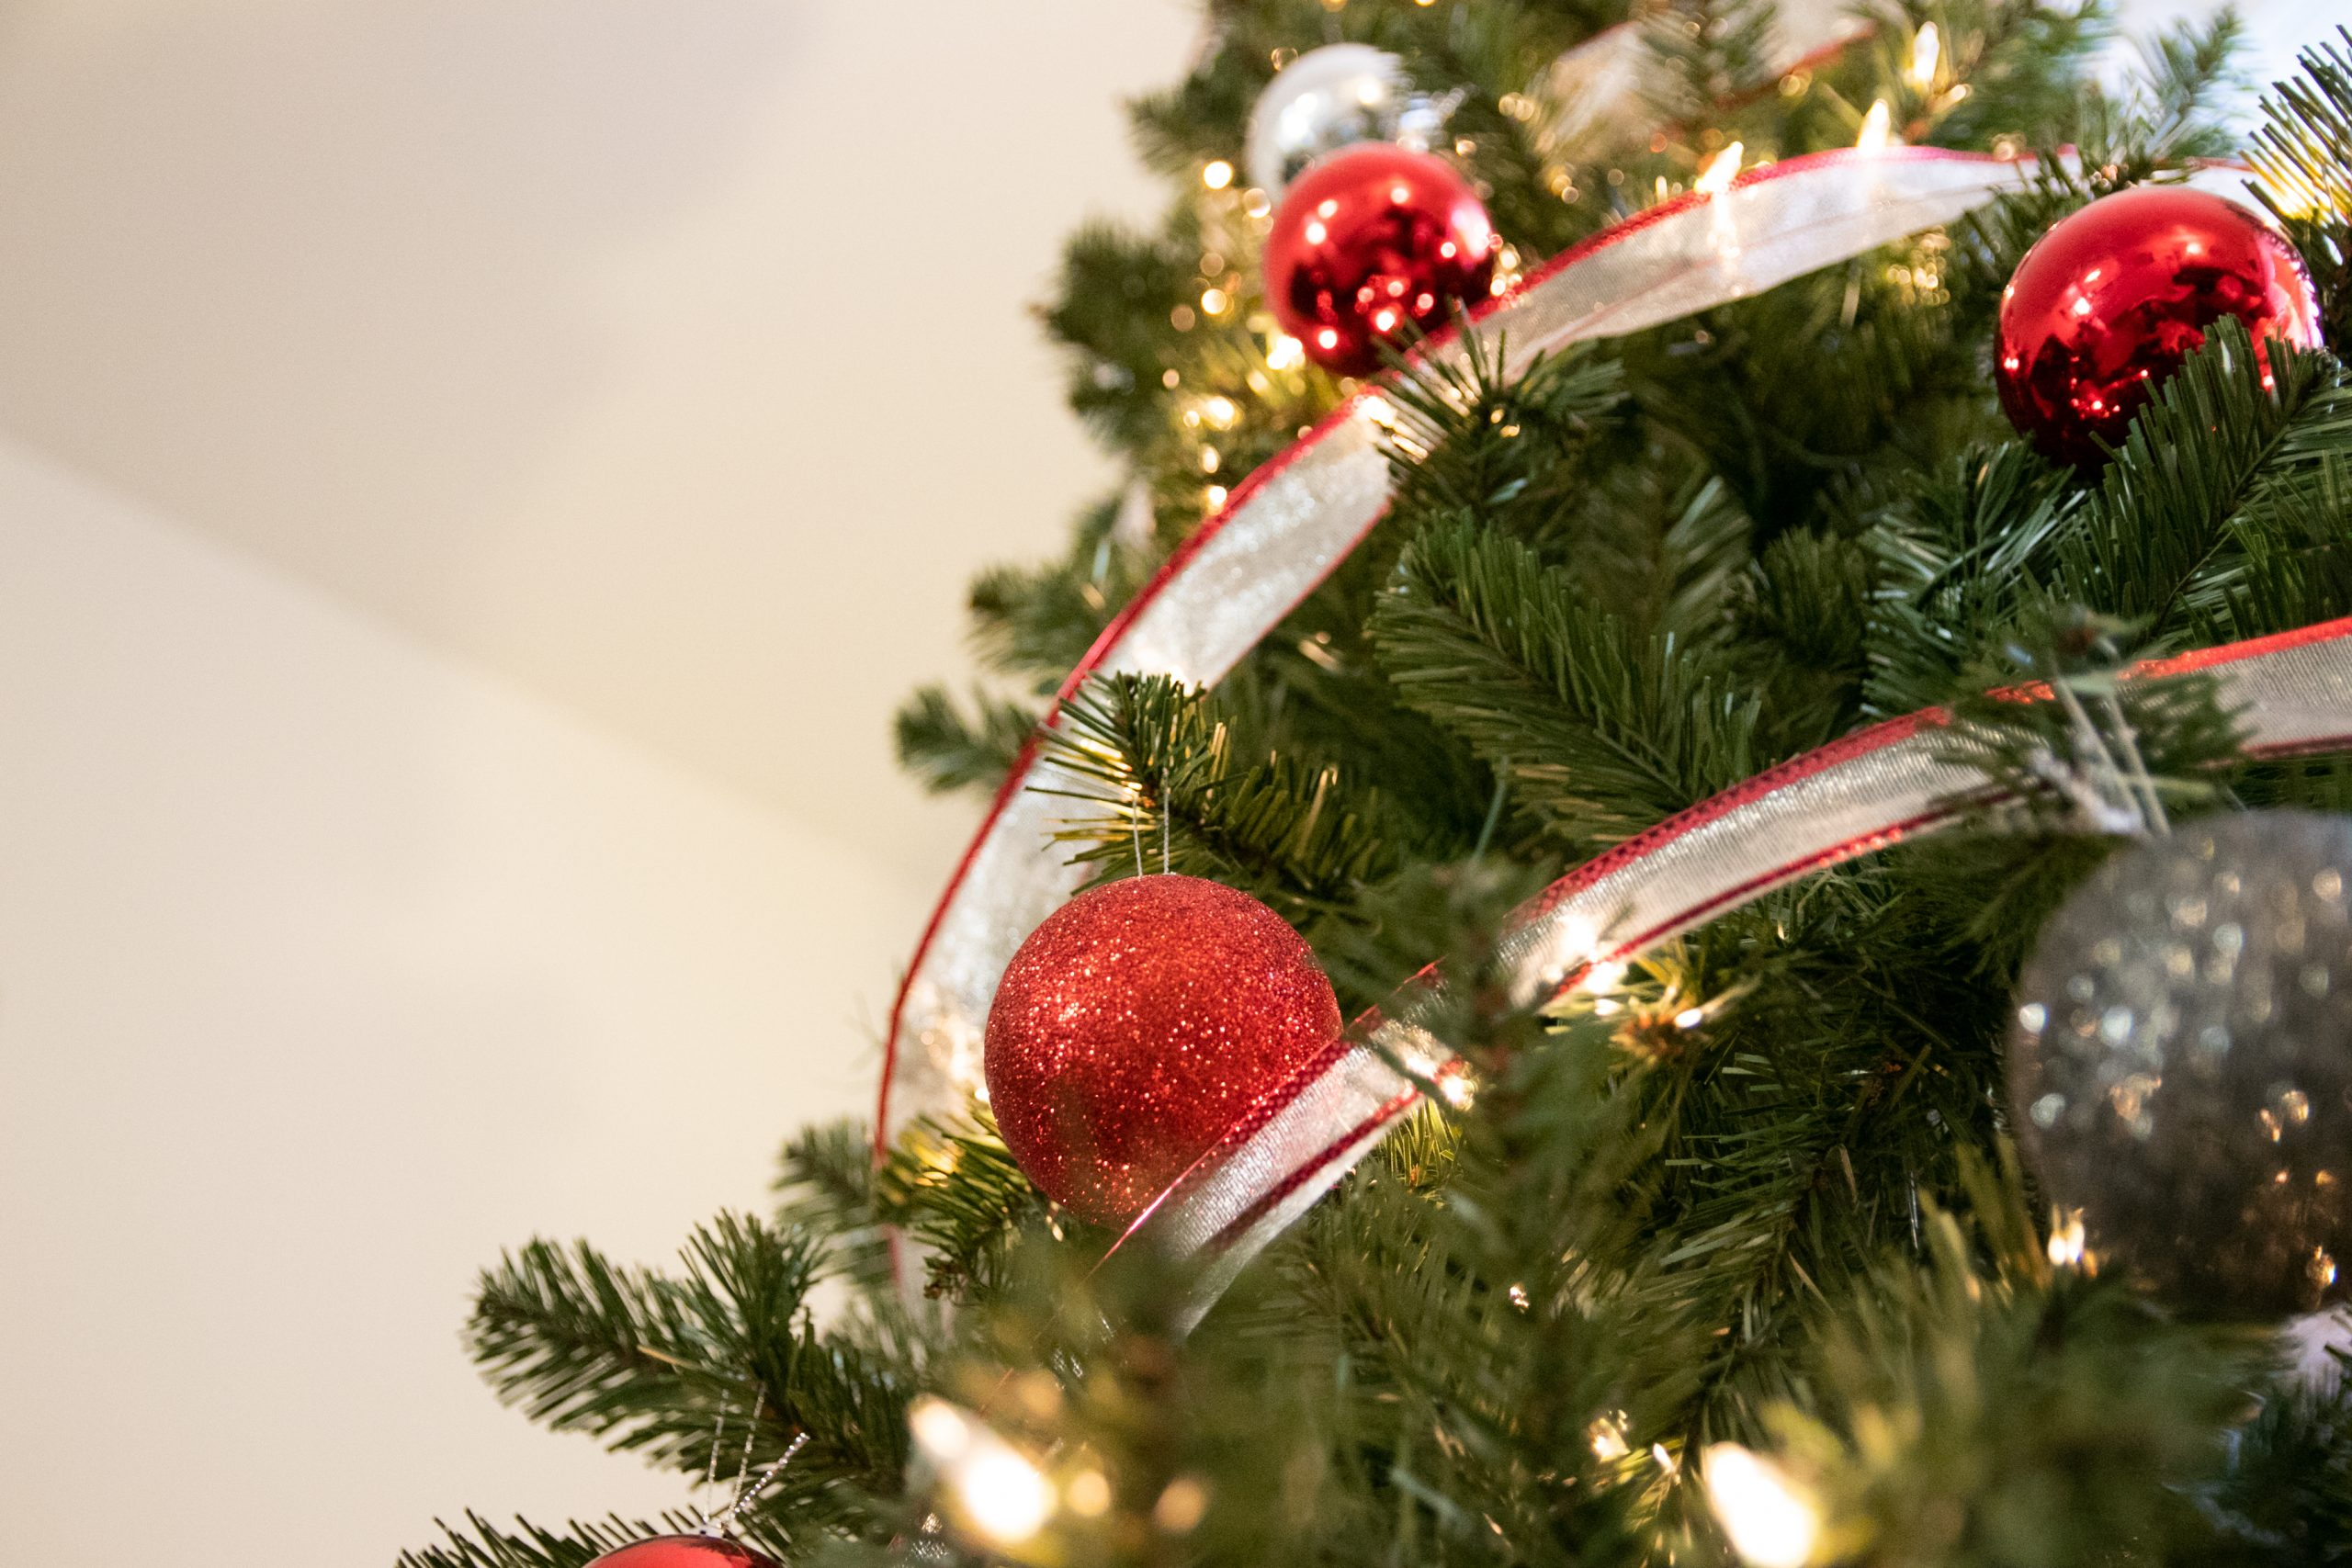 Free Stock Photo of Ornament Decorations On Lit Pine Tree